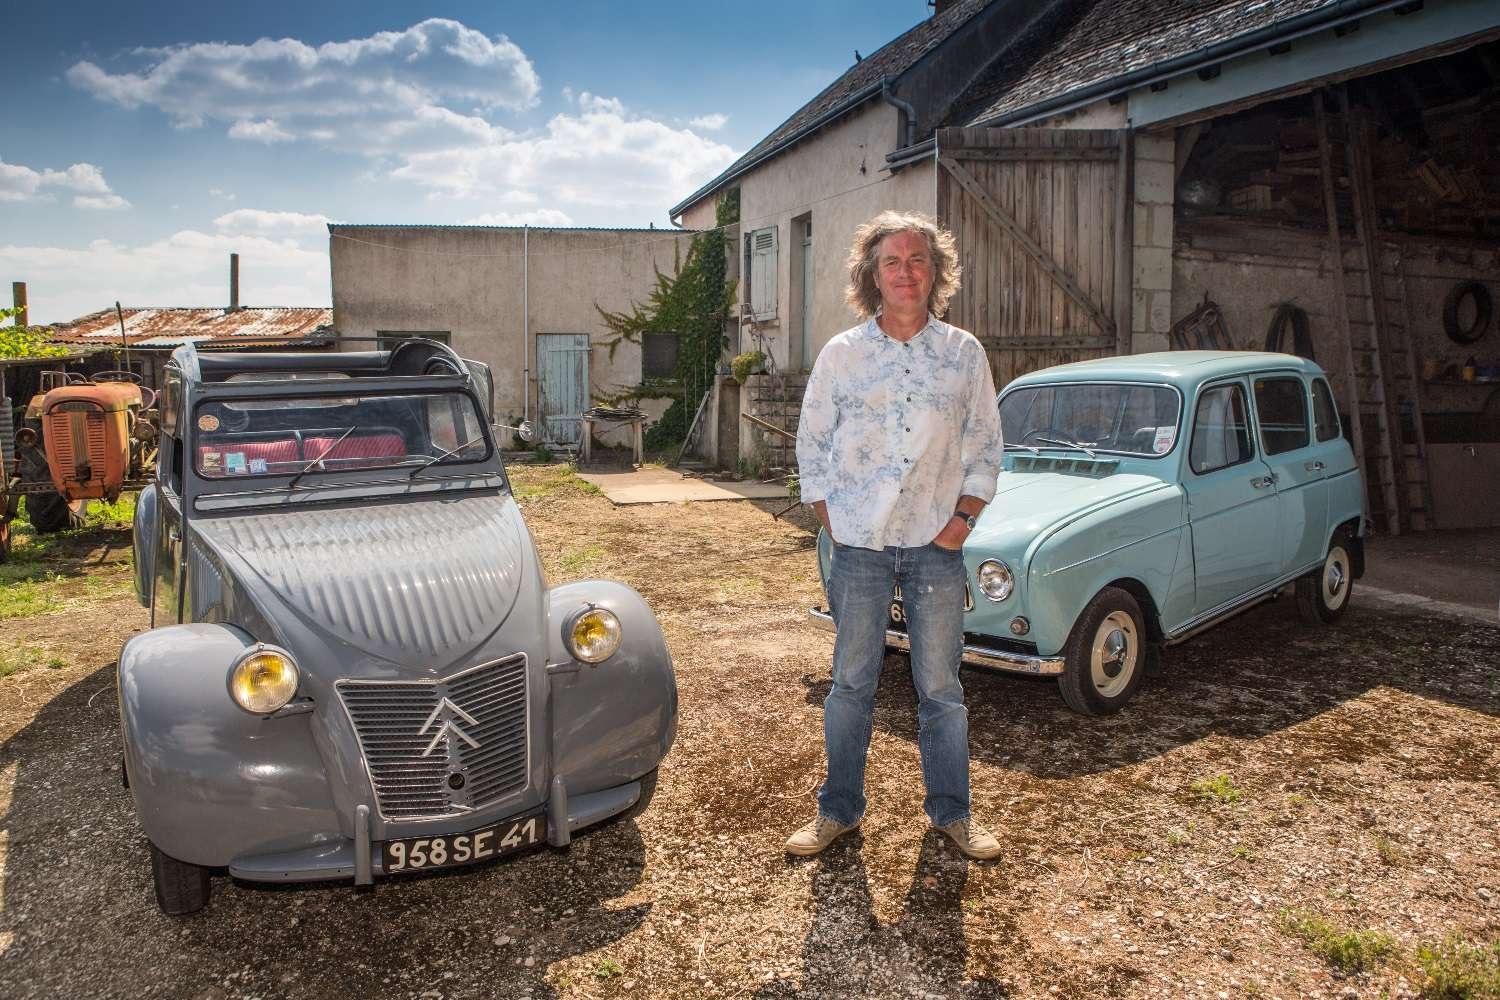 Top Gear's Cars of the People con James May Foto: BBC Worldwide Latin America